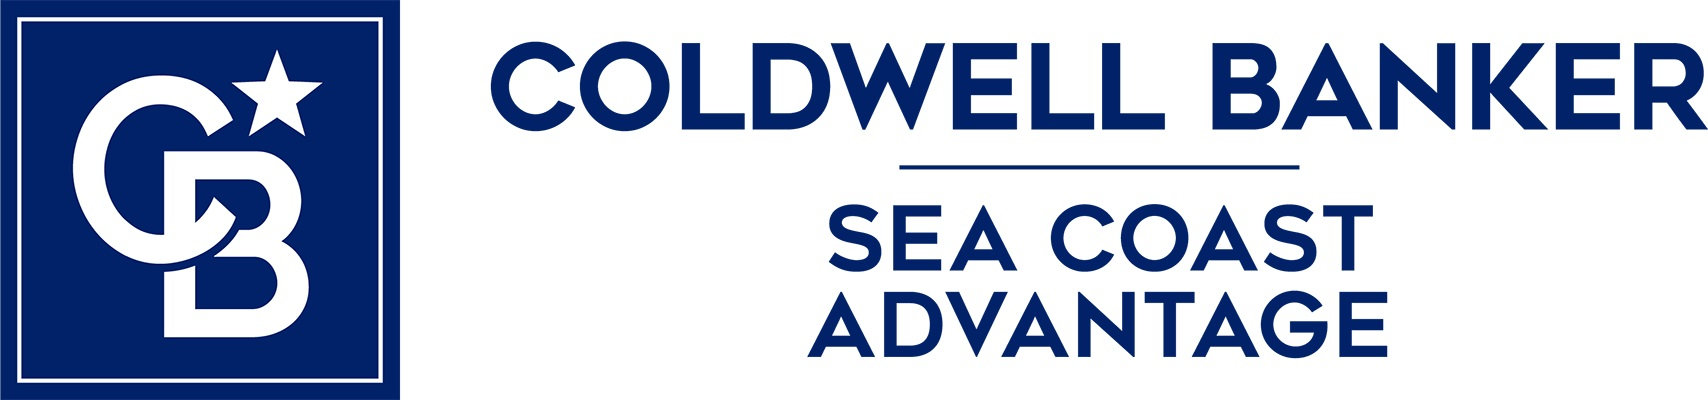 Julia Brown - Coldwell Banker Sea Coast Advantage Realty